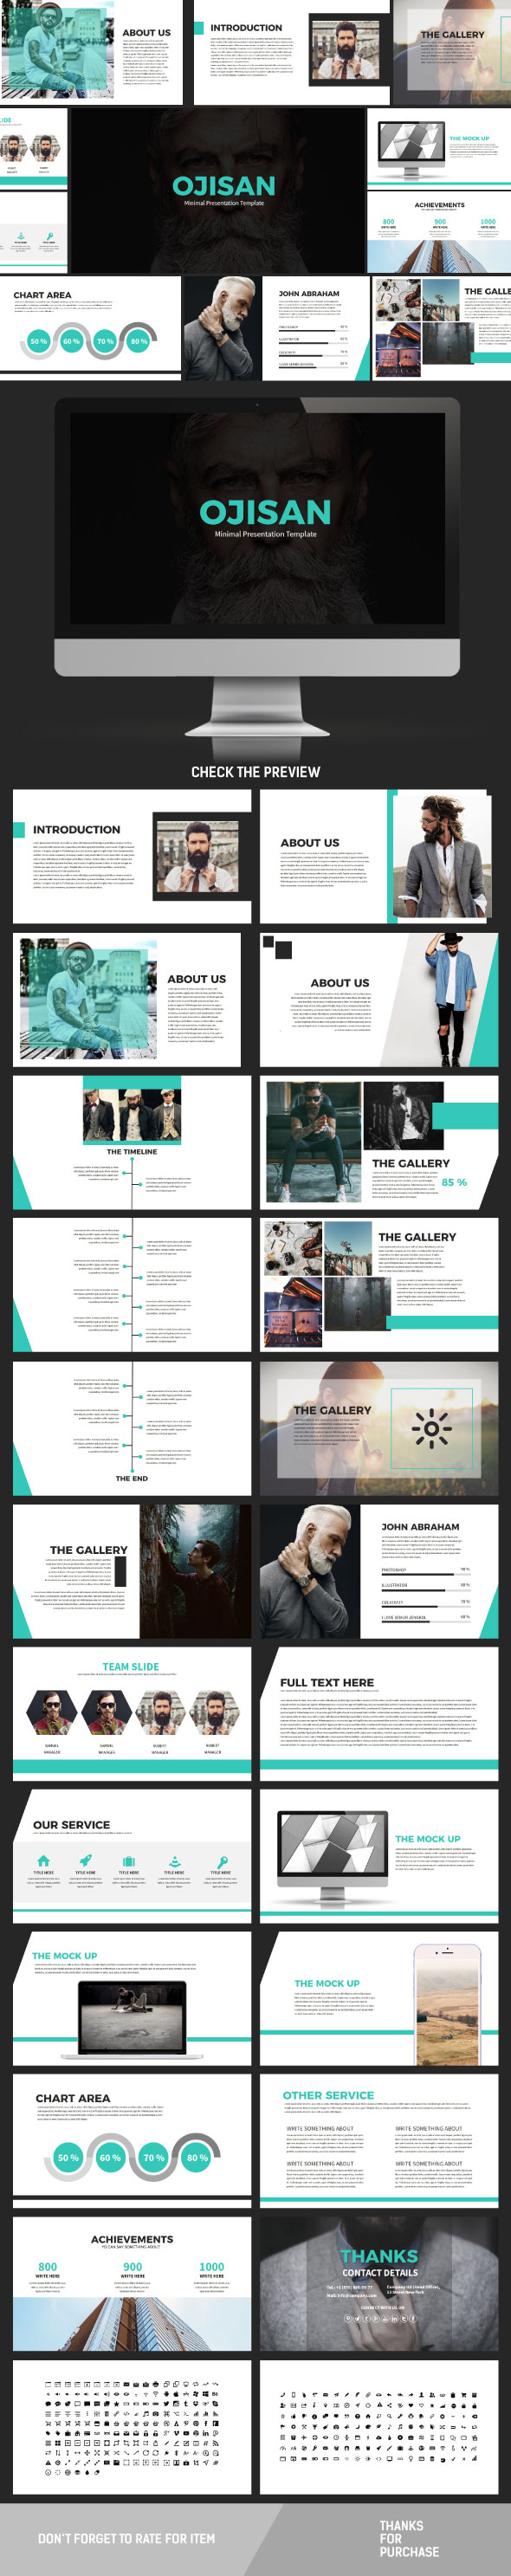 Ojisan Powerpoint Template - Creative PowerPoint Templates